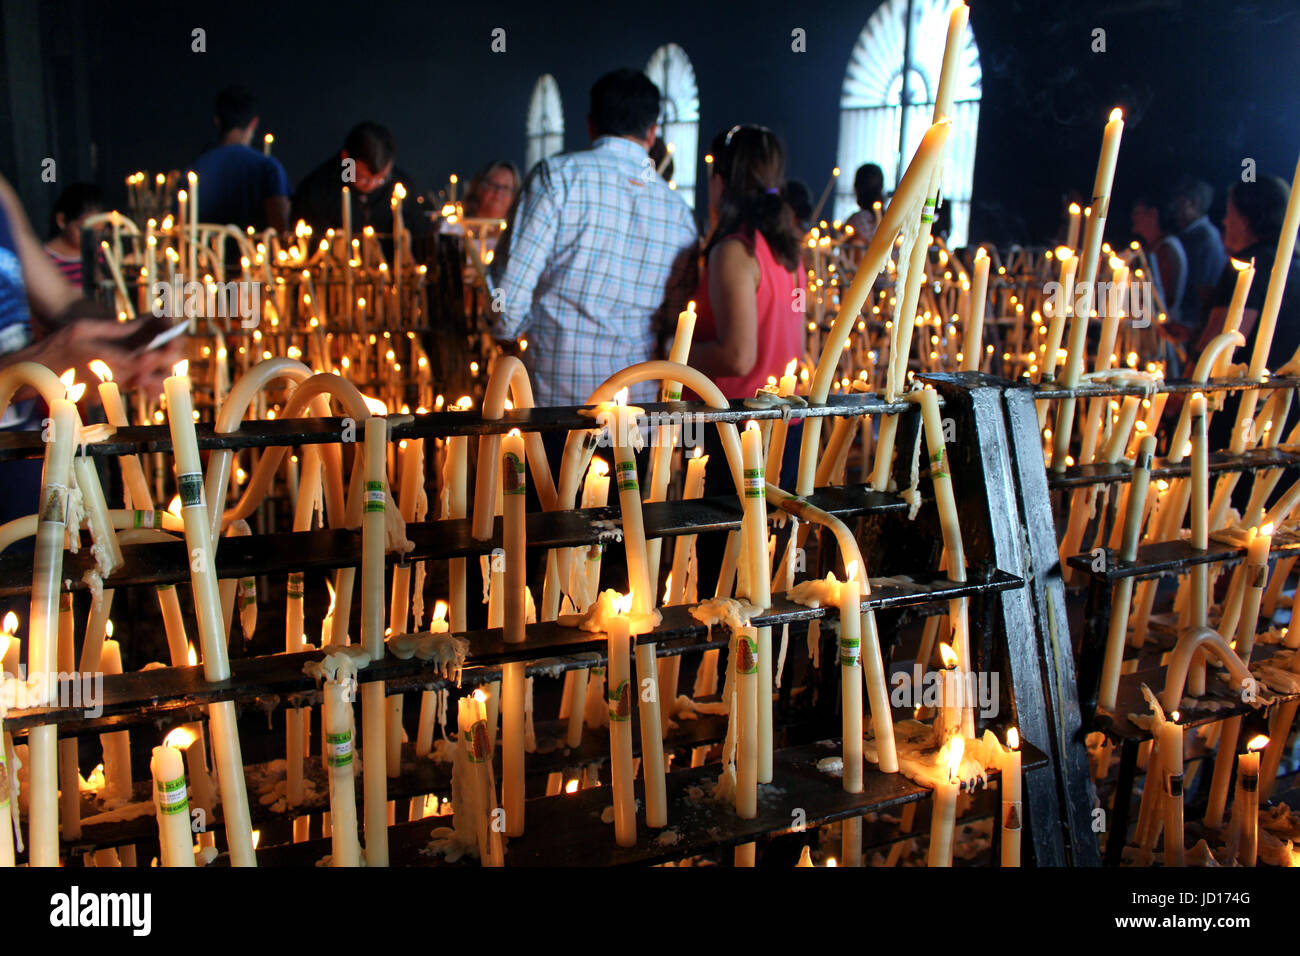 HUELVA/SPAIN - 9 OCTOBER 2016: People lighting candles as a sign of devotion to the Virgin of El Rocío in the - Stock Image